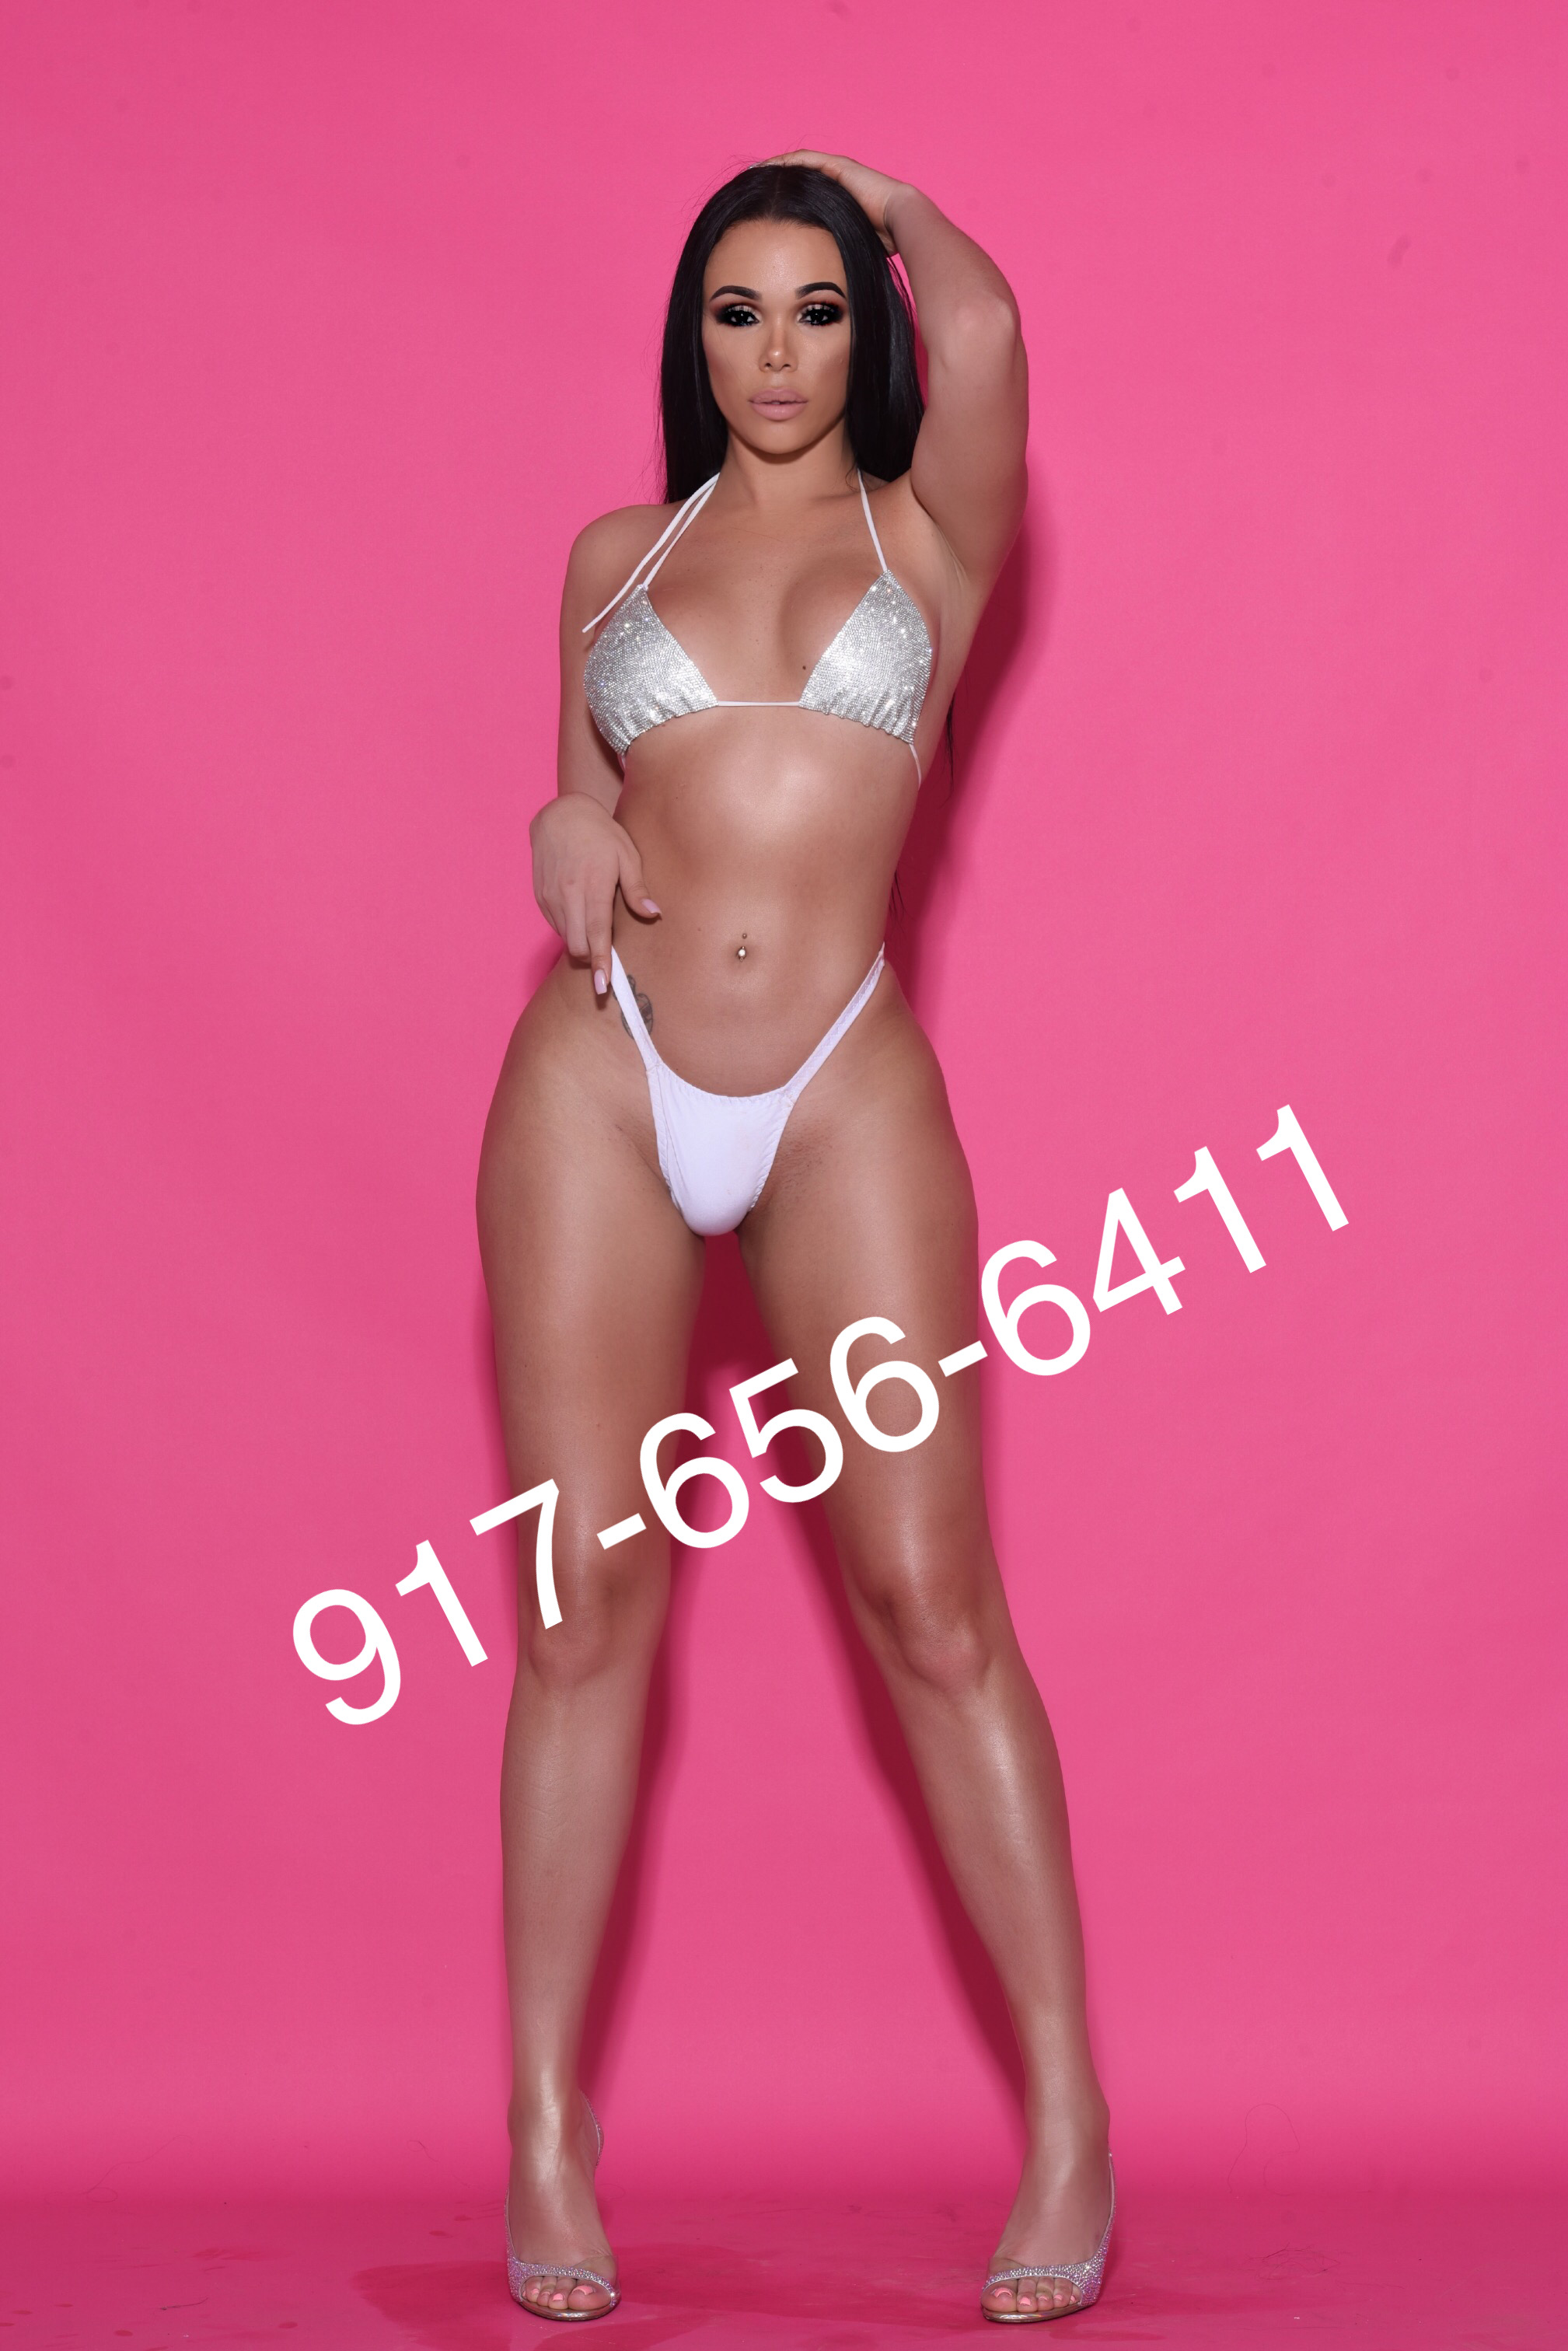 Lauren Cox Profile, Escort in Washington DC, 9176566411